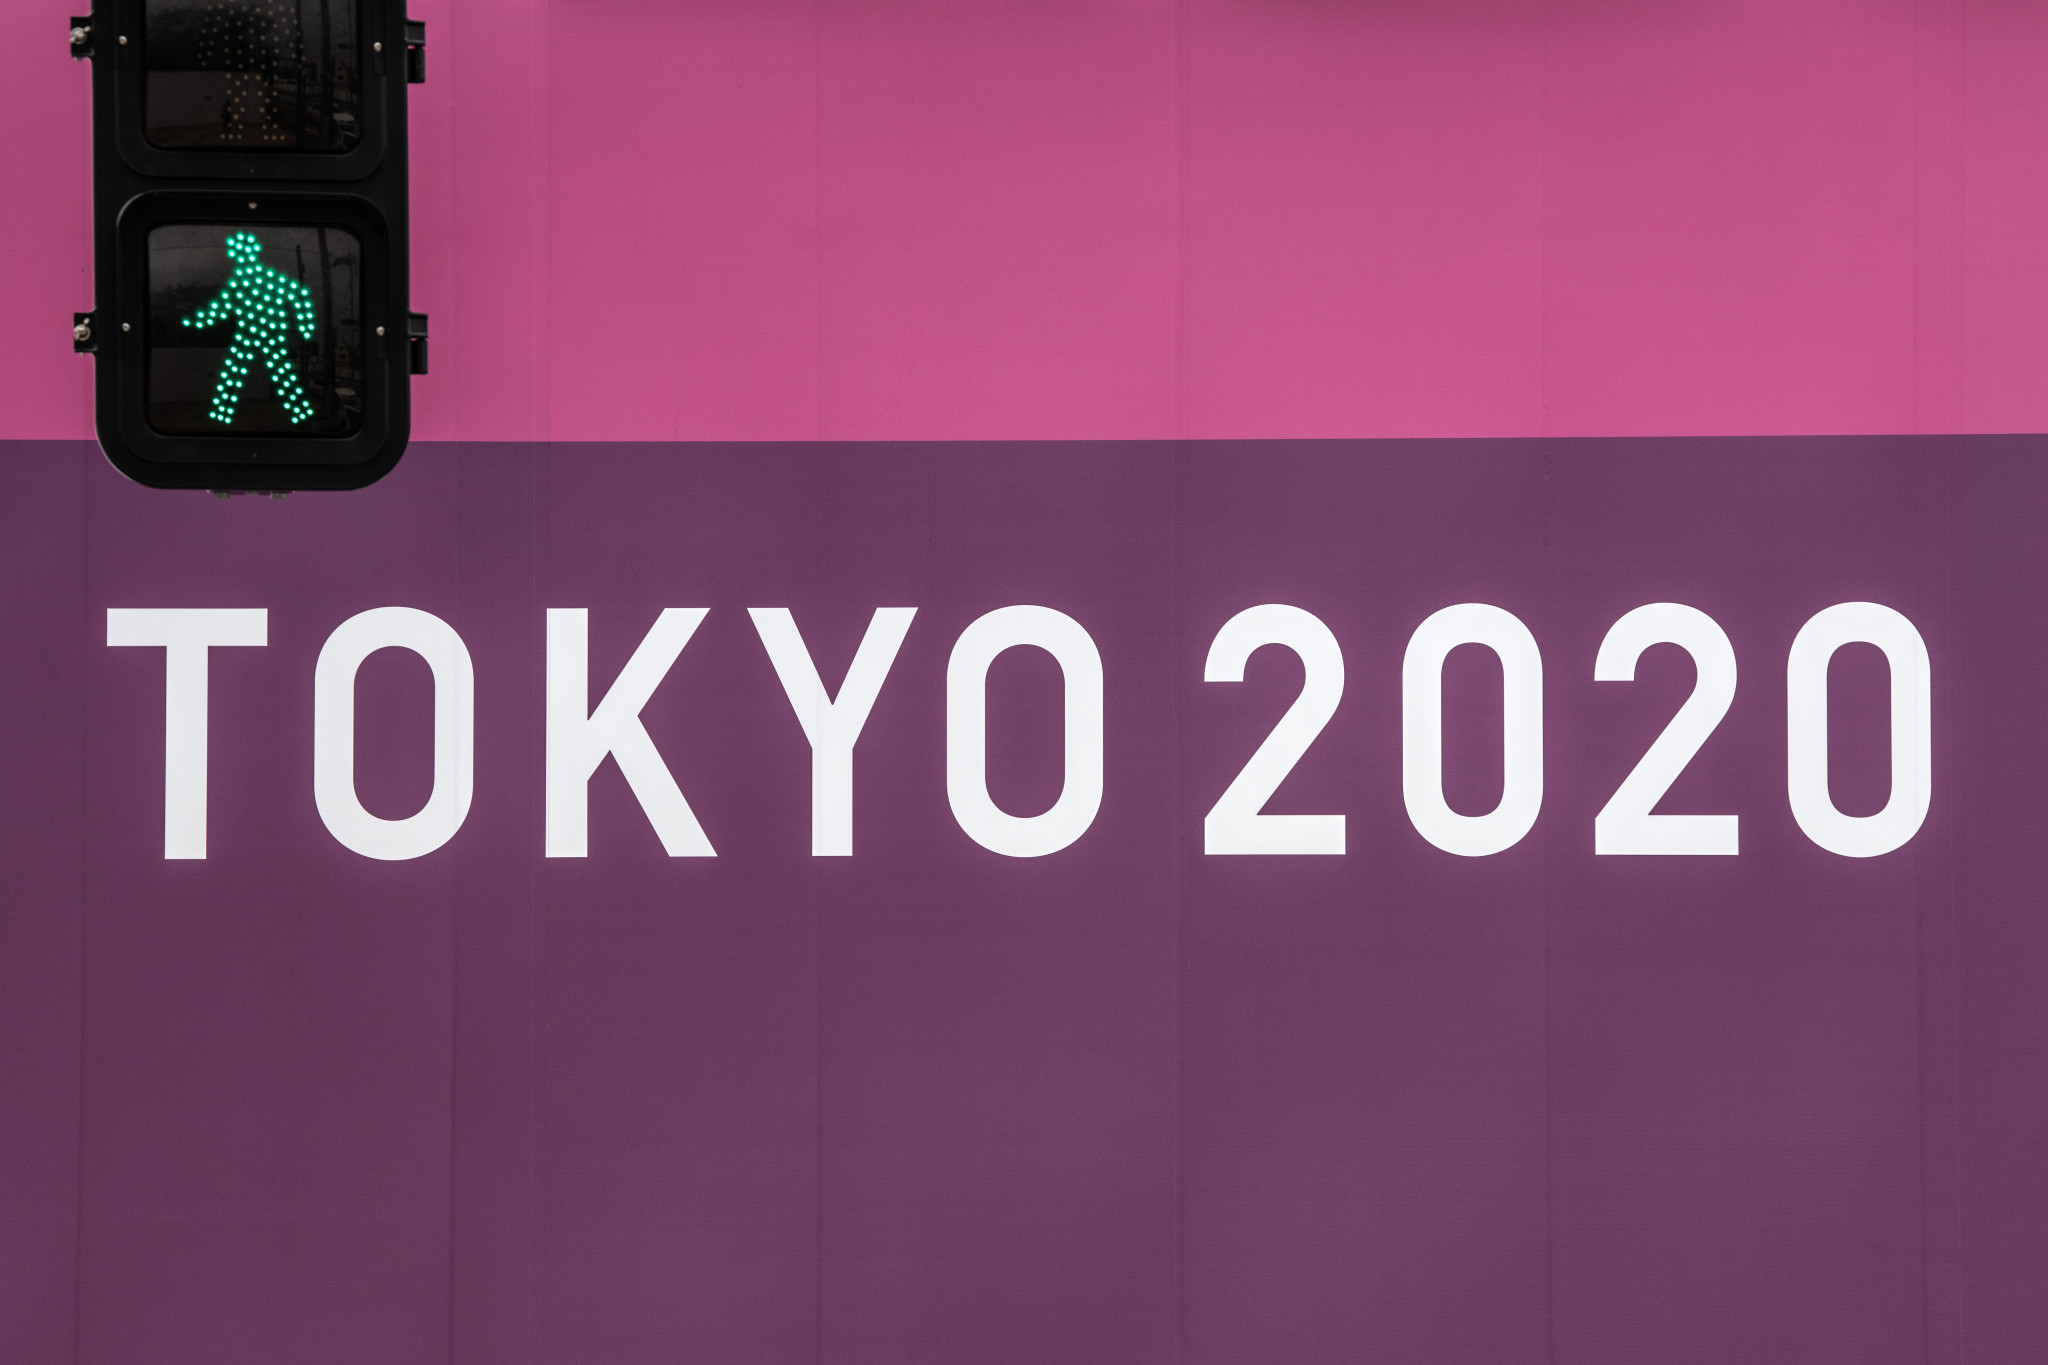 Details of Tokyo 2020 Nippon festival announced